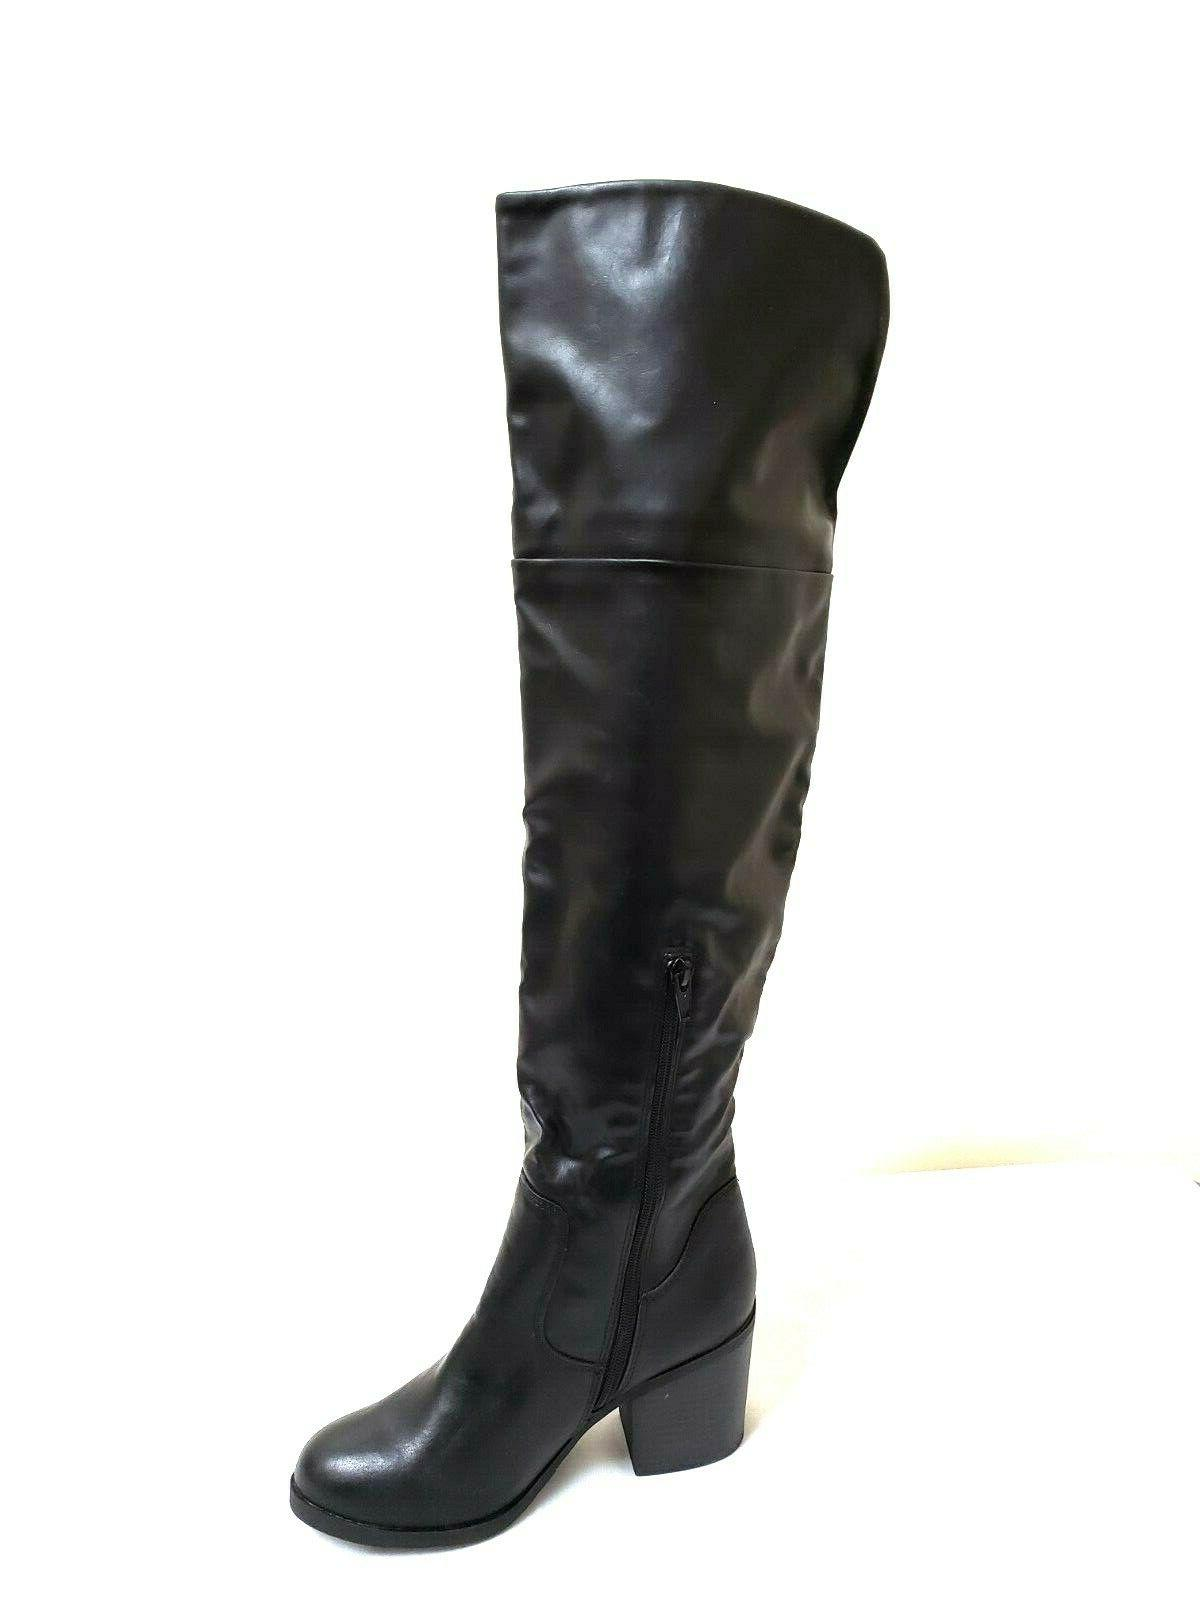 New! MOSSIMO Tall Fashion Boots Black